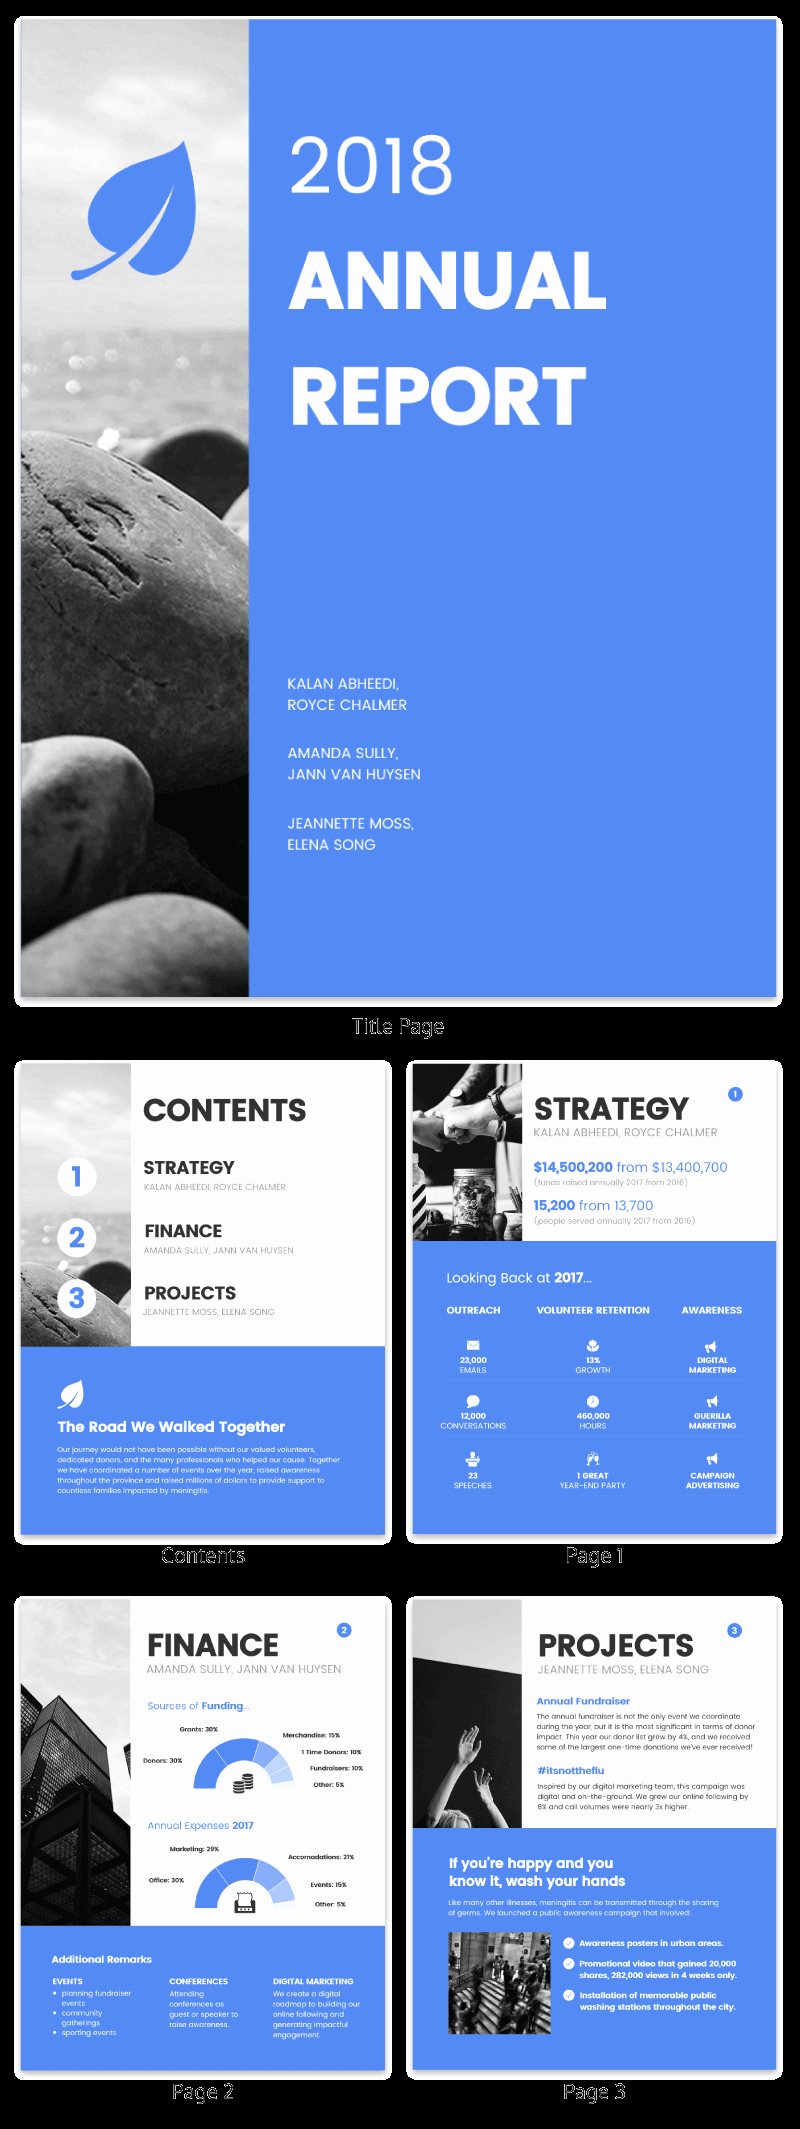 Annual Report Design Template Beautiful 55 Customizable Annual Report Templates Examples & Tips